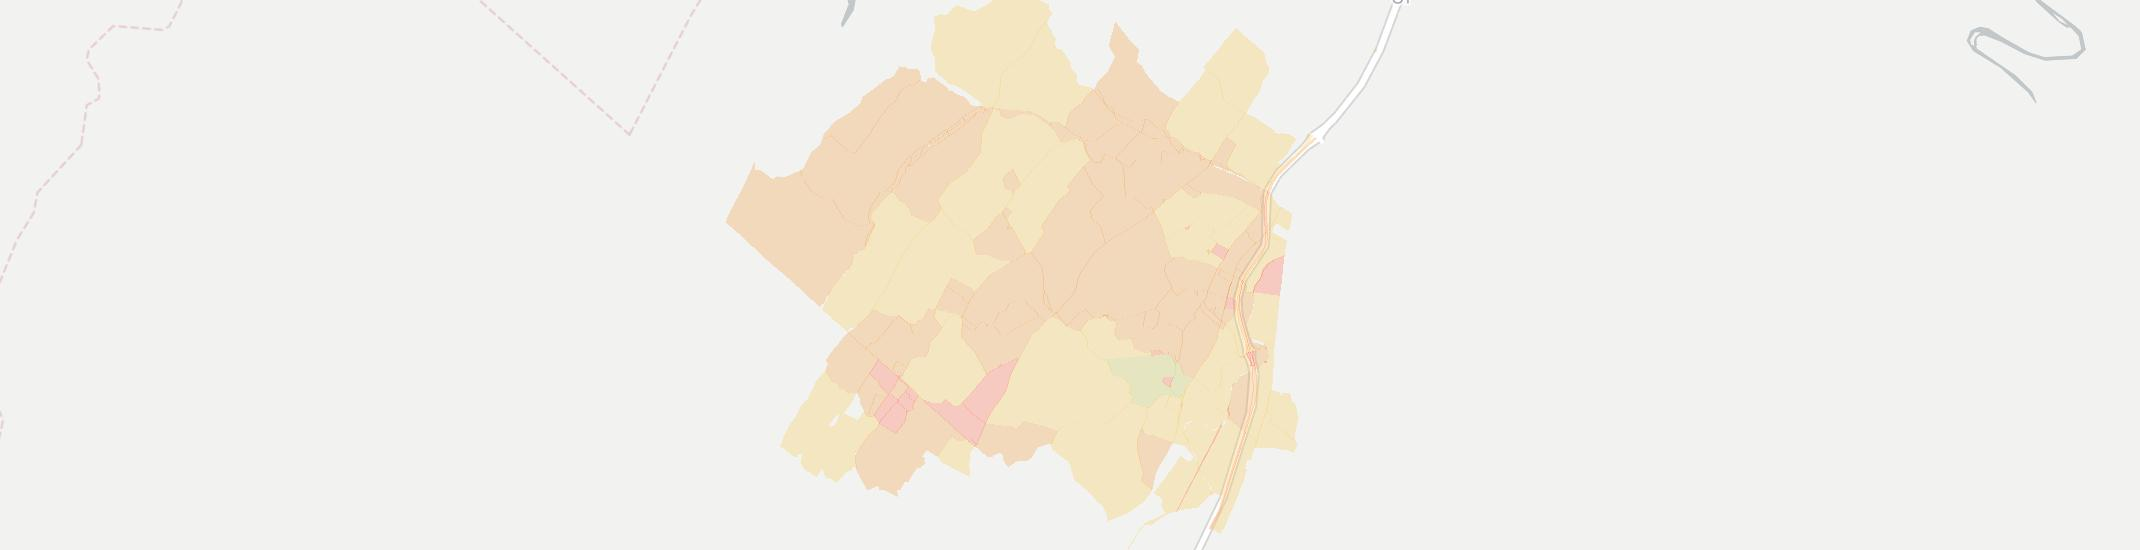 Quicksburg Internet Competition Map. Click for interactive map.